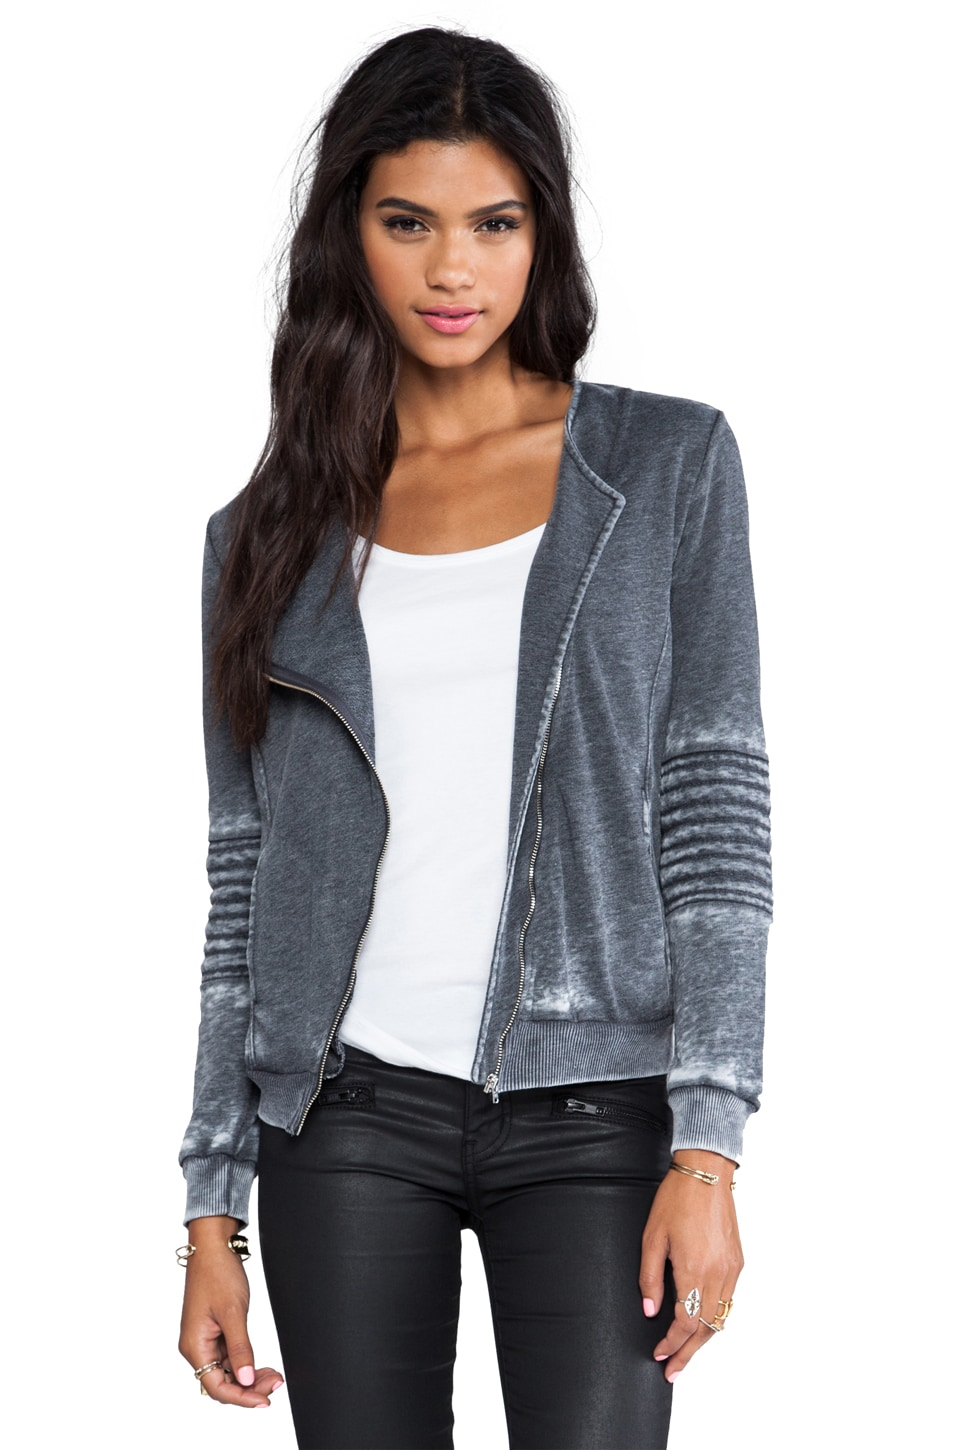 American Vintage Rexburg Zipped Jacket in Carbon Melange